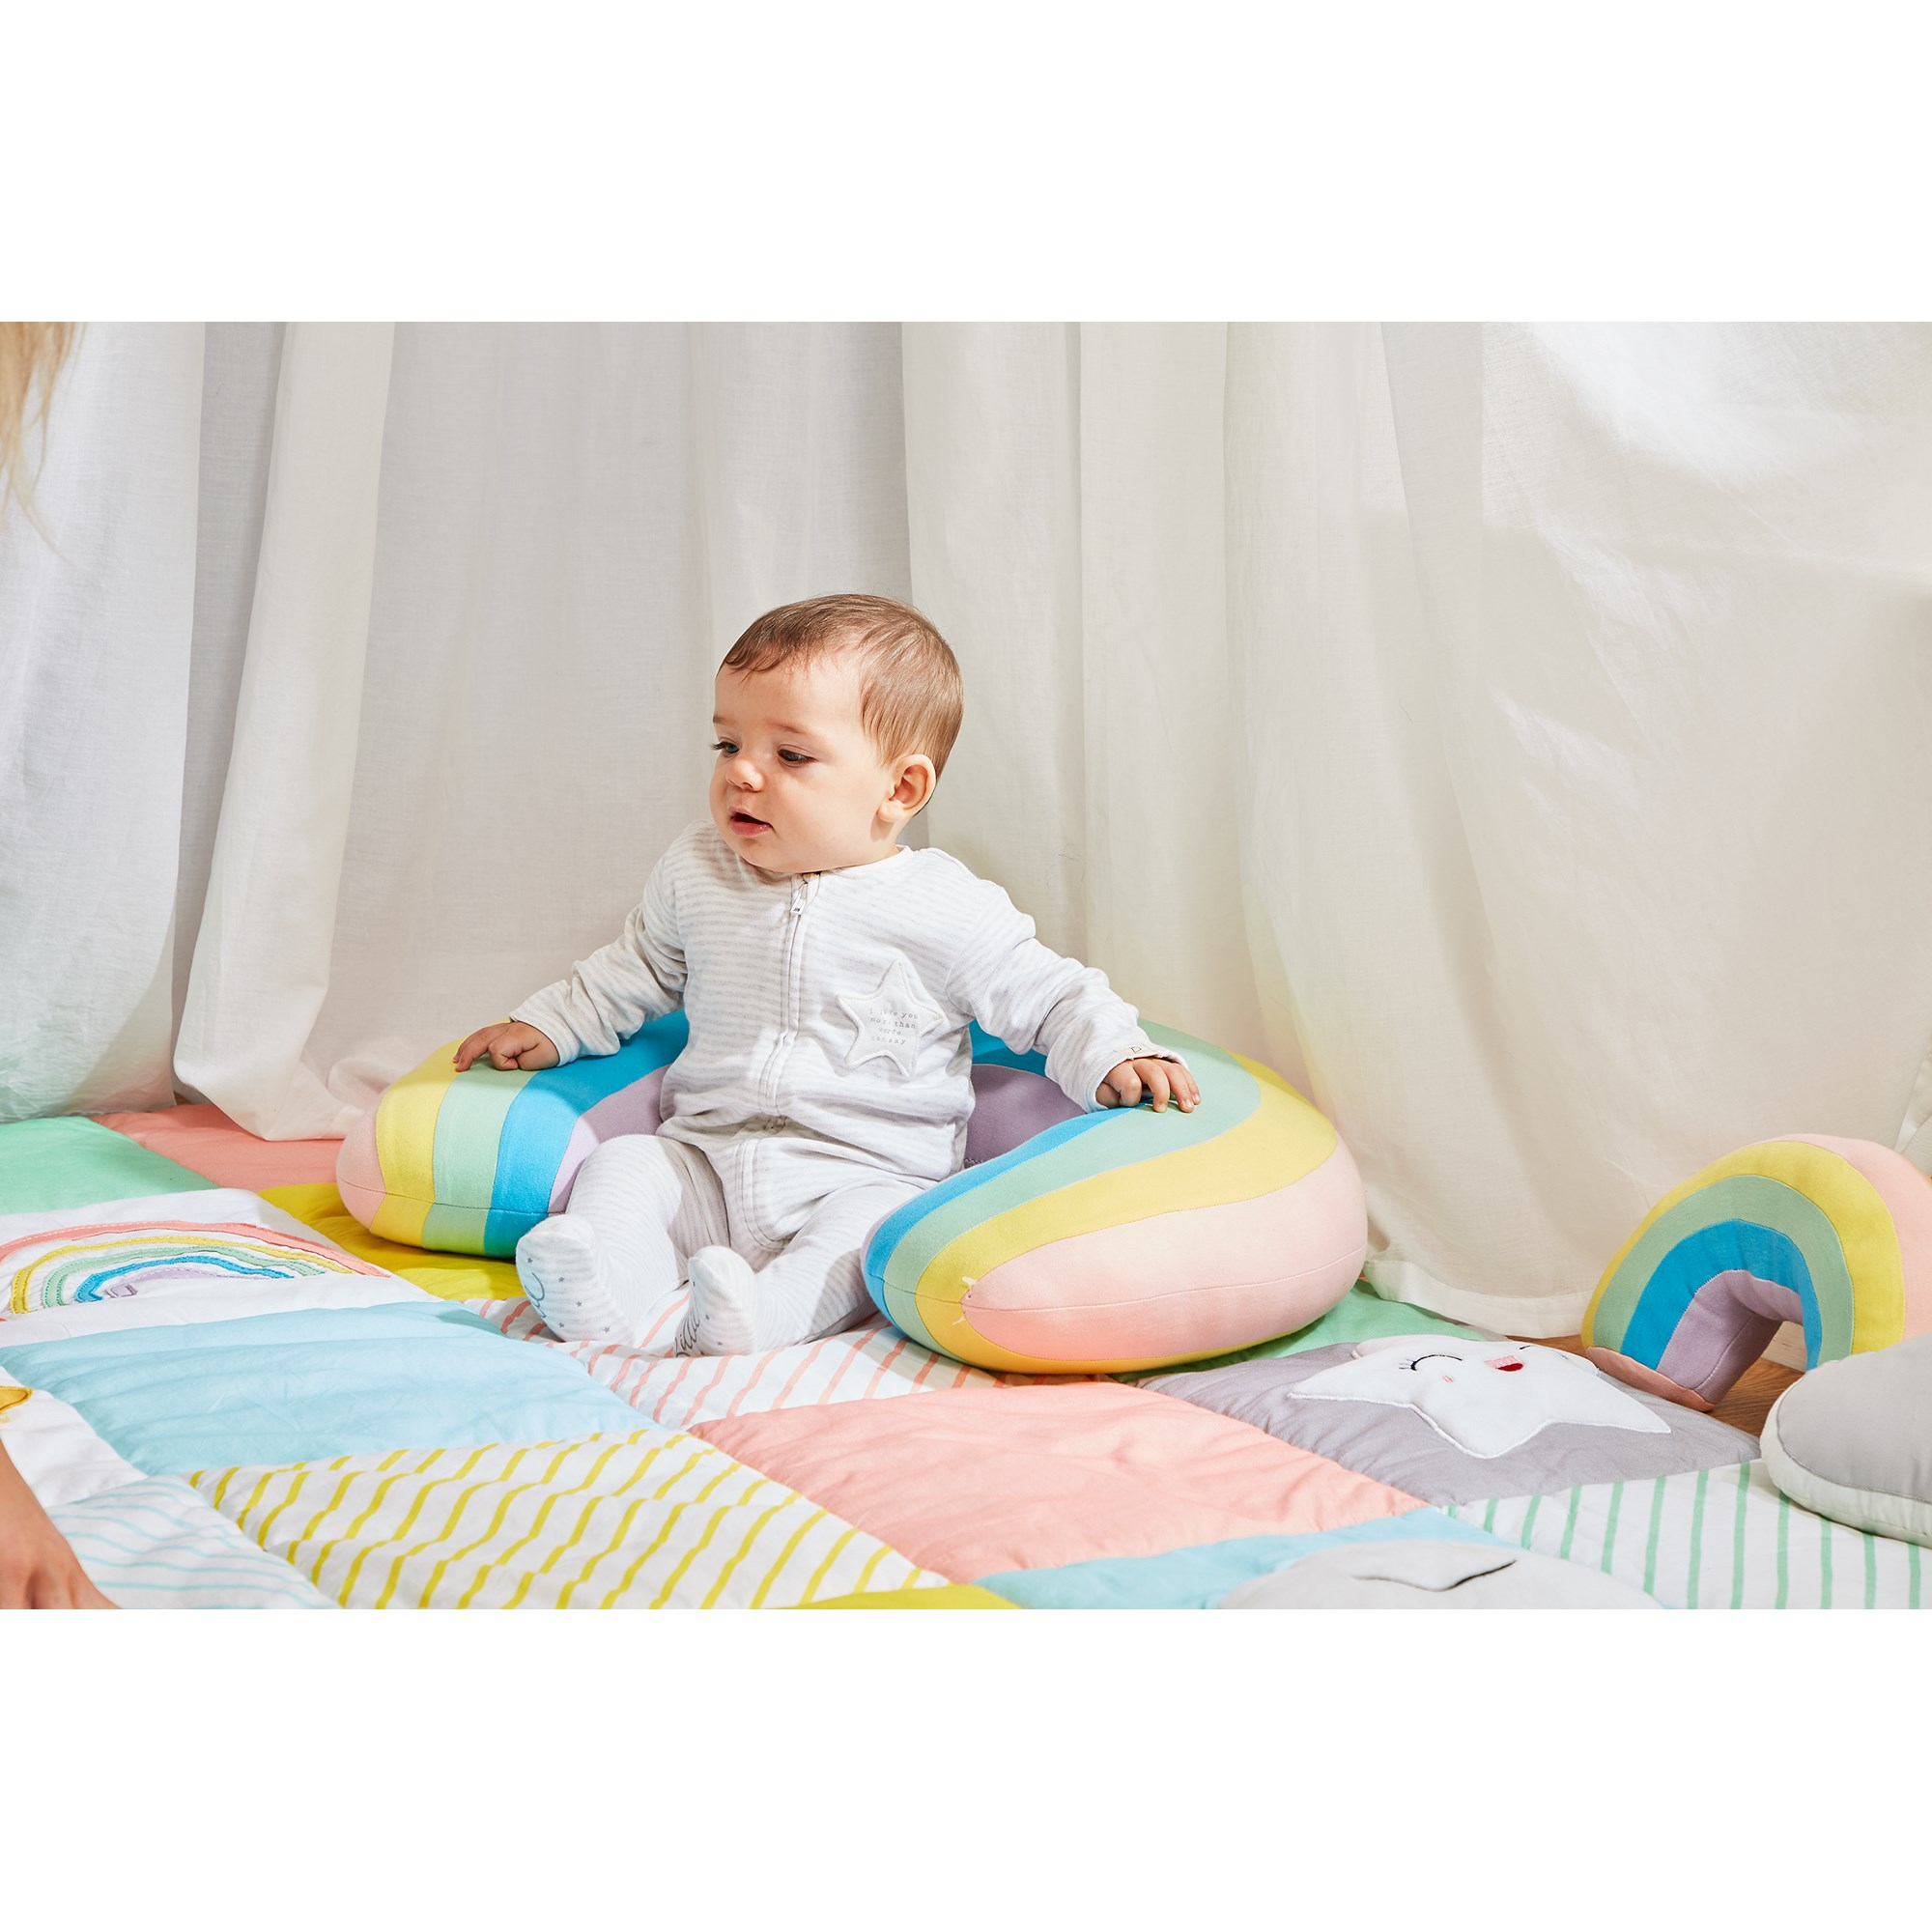 Rainbow Sit Up Cushion from Hope Education